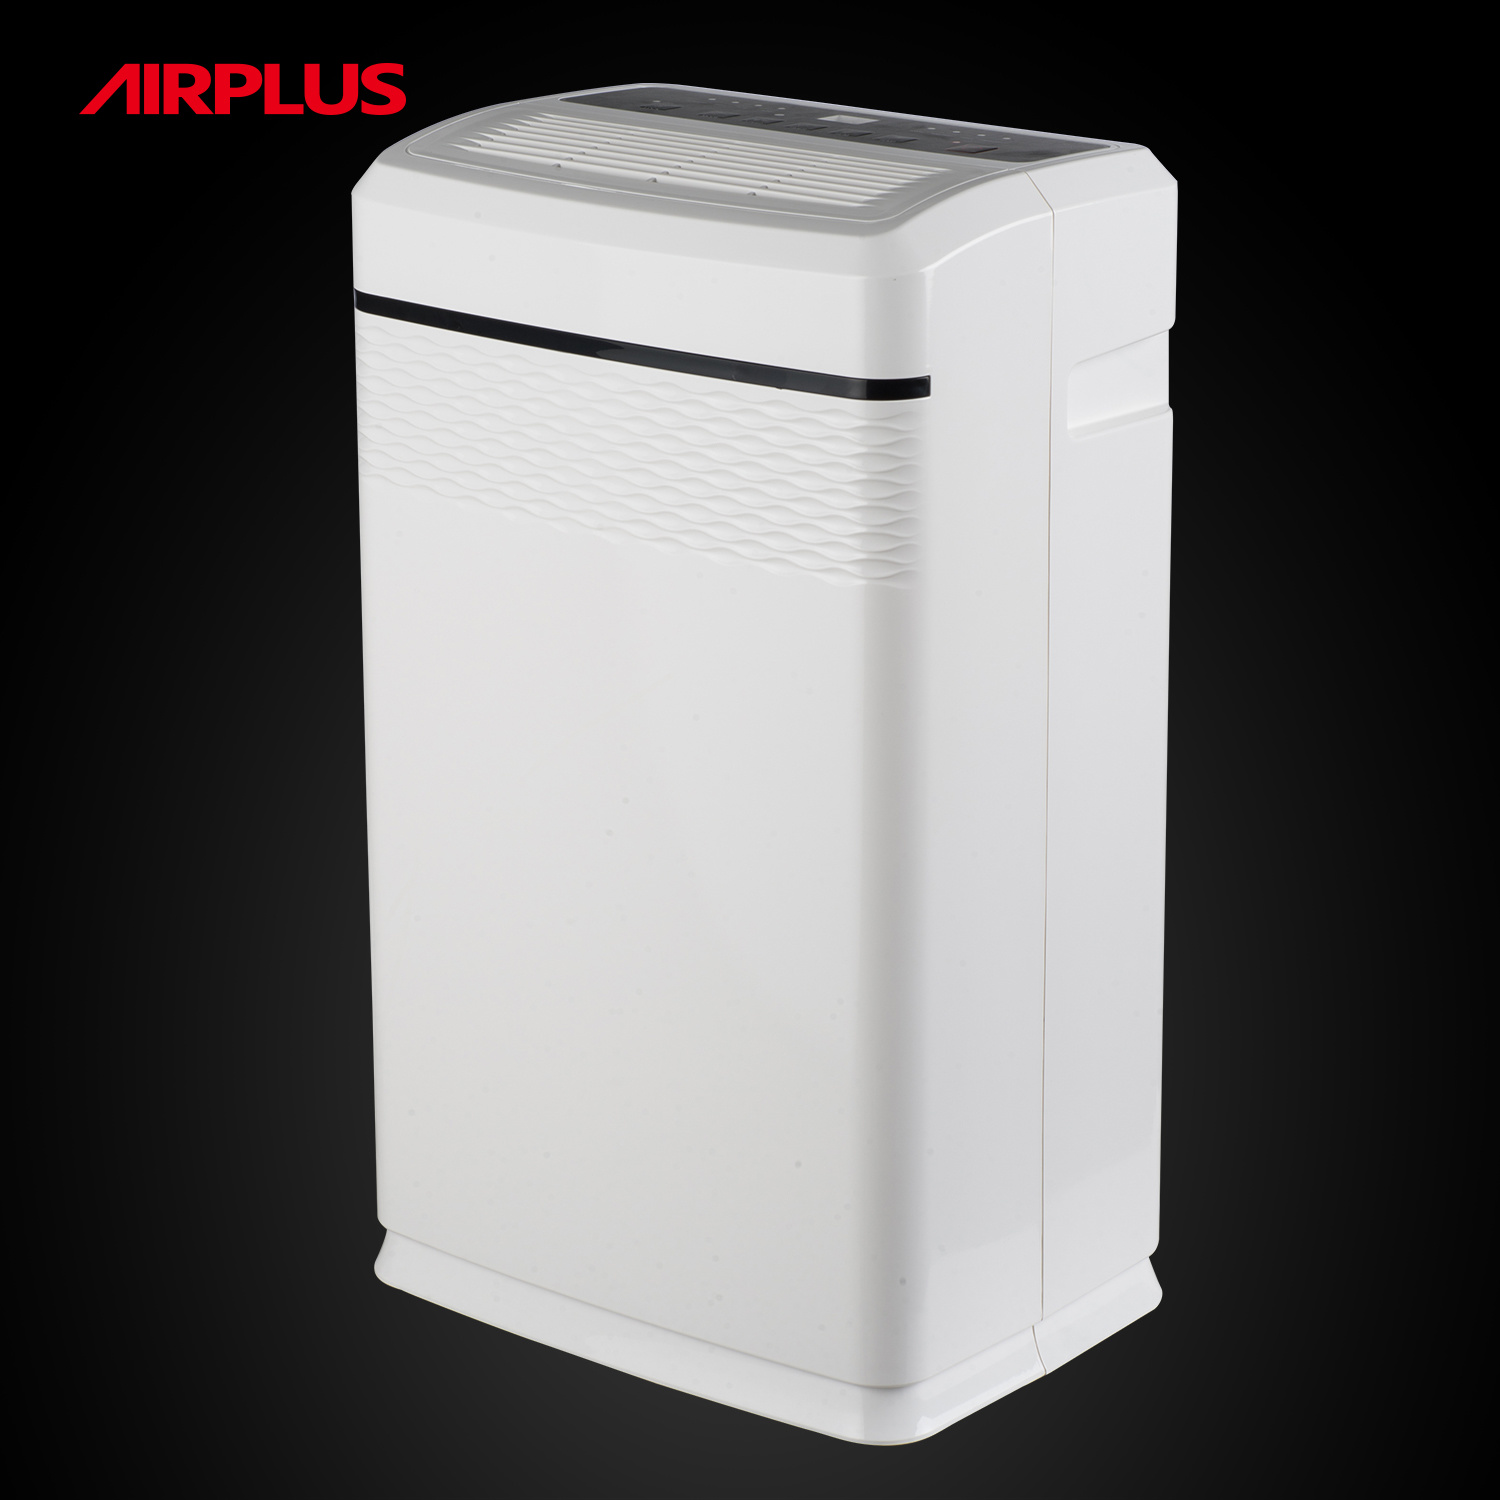 20L/Day Purifying Dehumidifier with HEPA for Home (AP20-501EB)